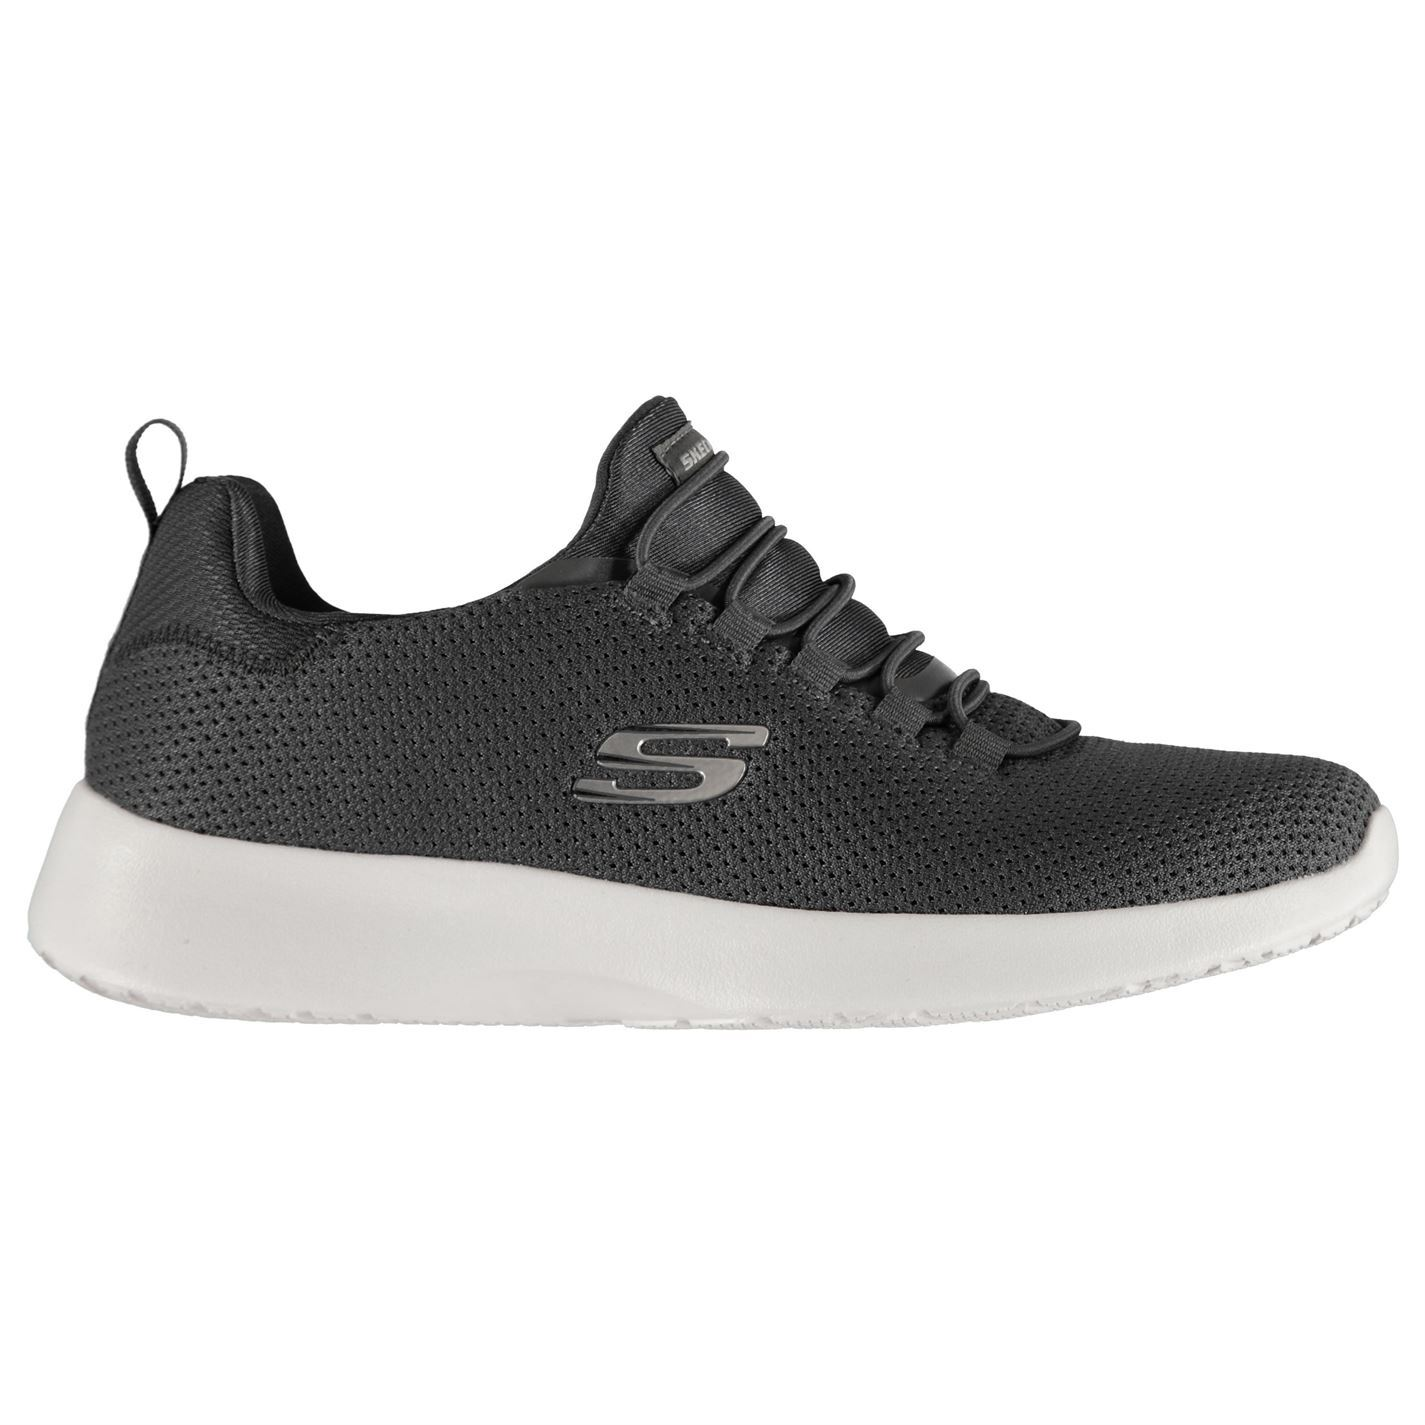 Details about Skechers Dynamight Trainers Mens Athleisure Footwear Shoes Sneakers